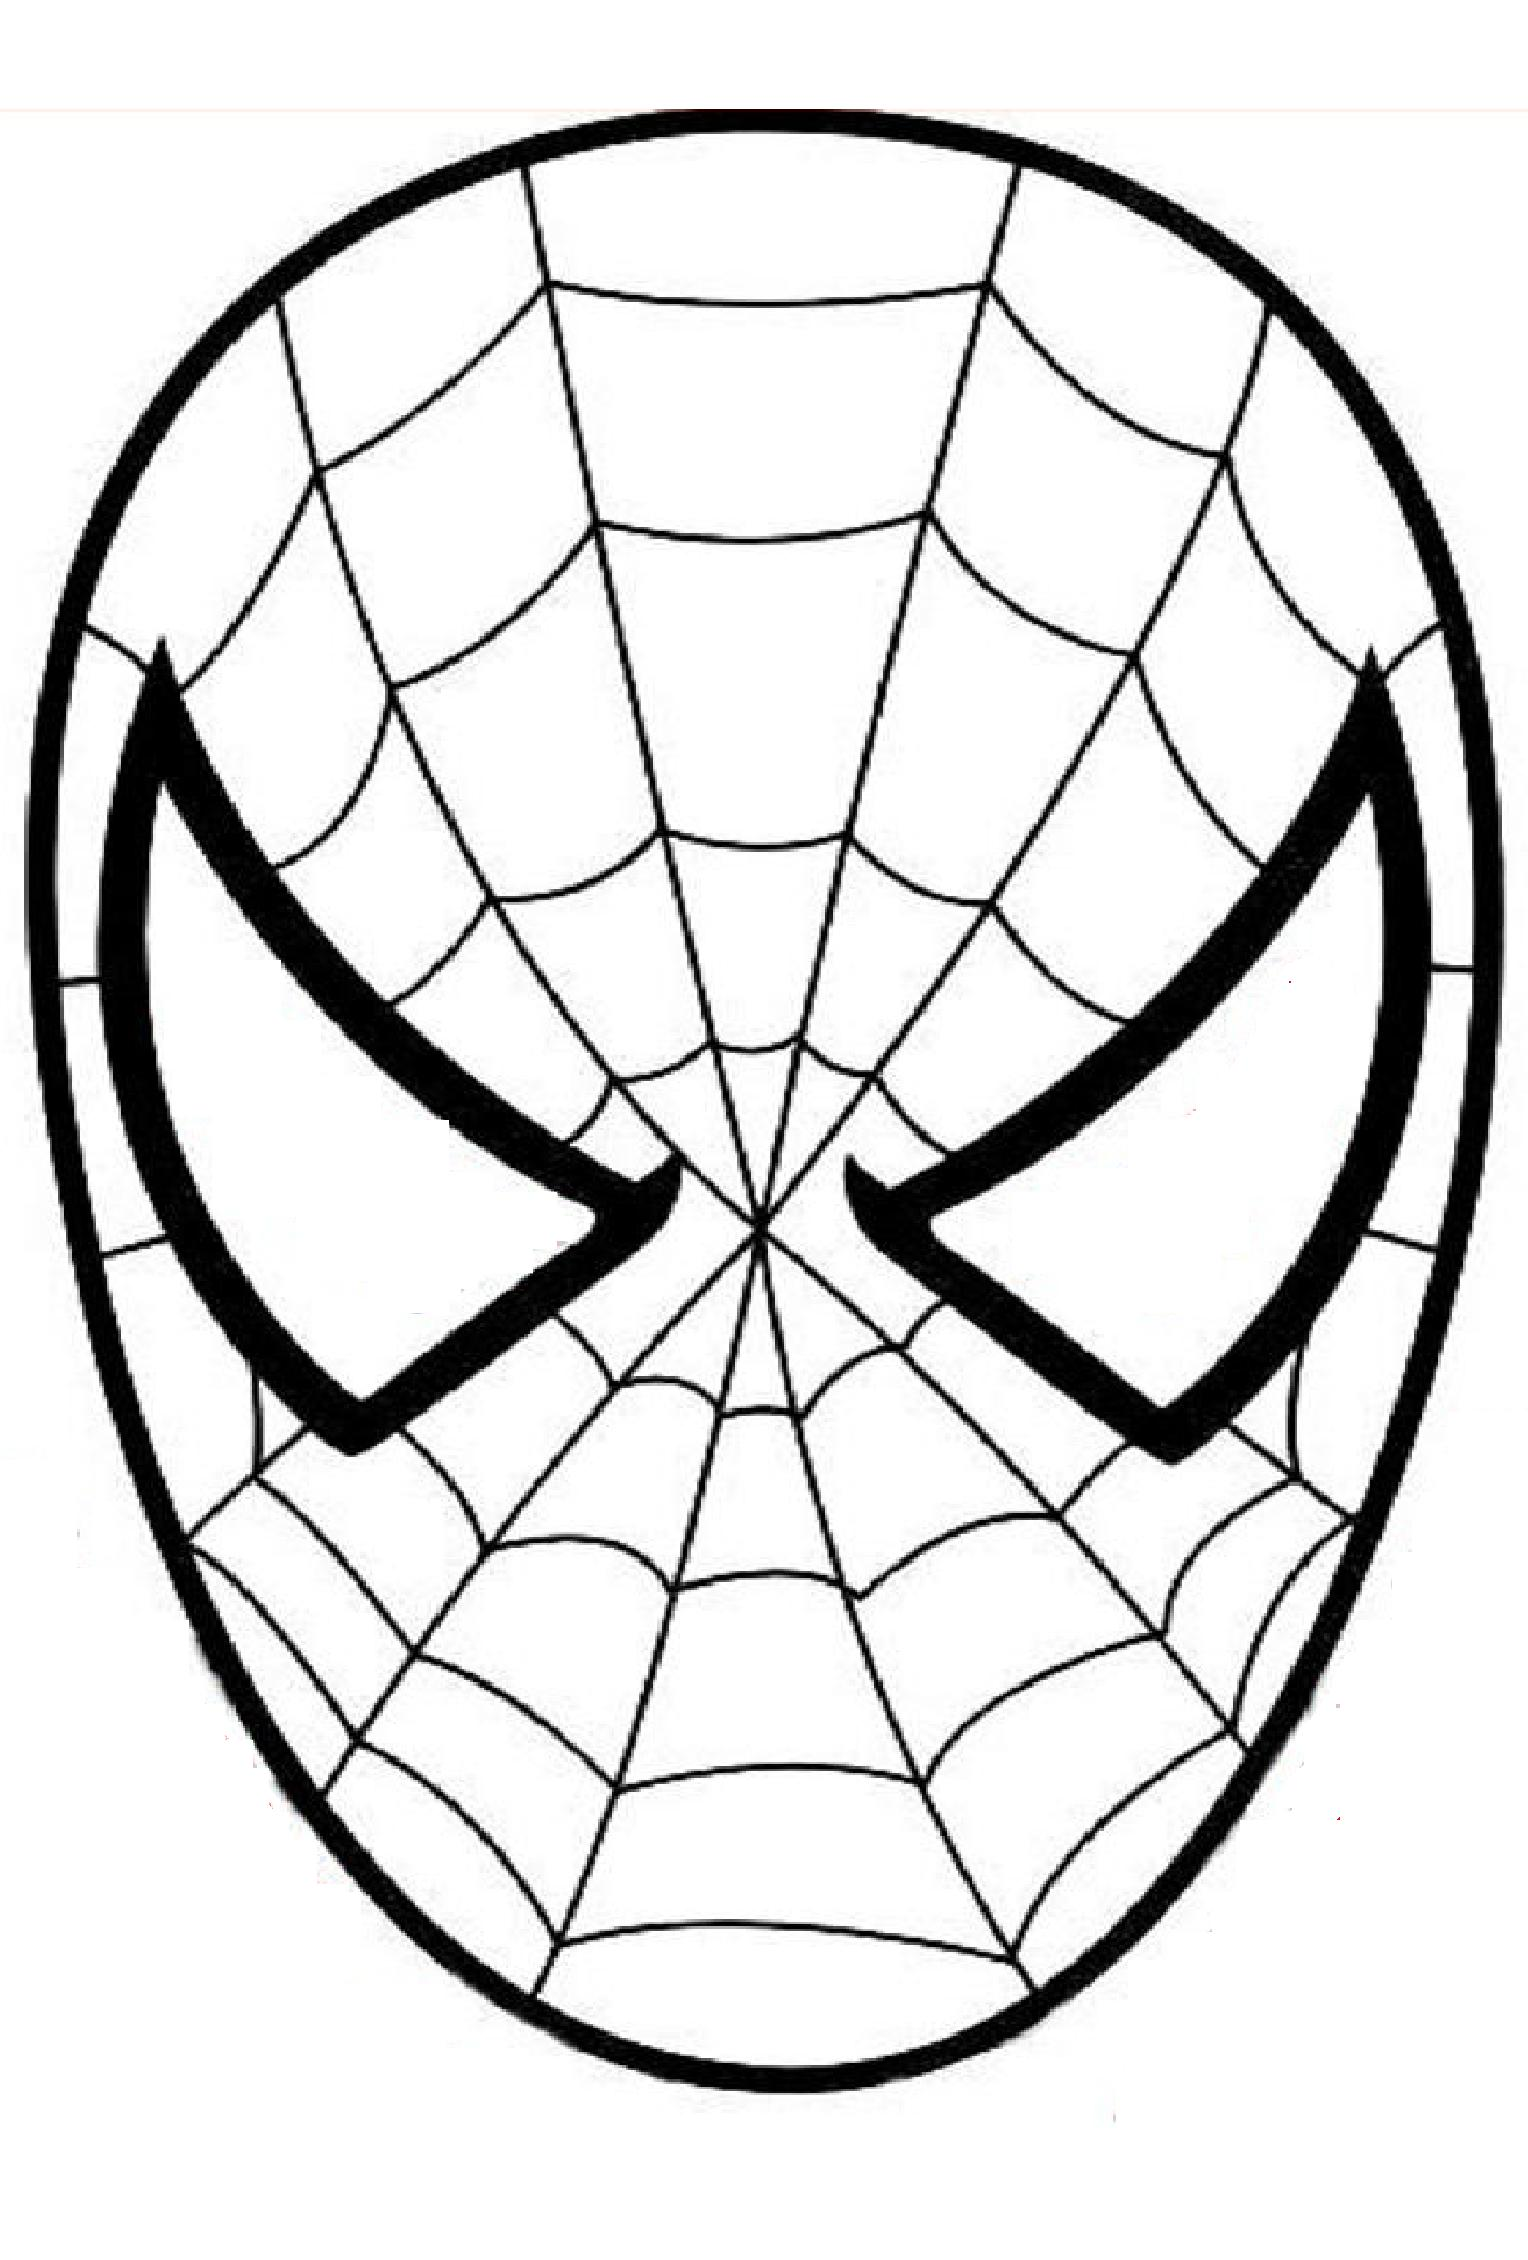 Easy Spiderman Coloring Pages : spiderman, coloring, pages, Spiderman, Print, Coloring, Pages